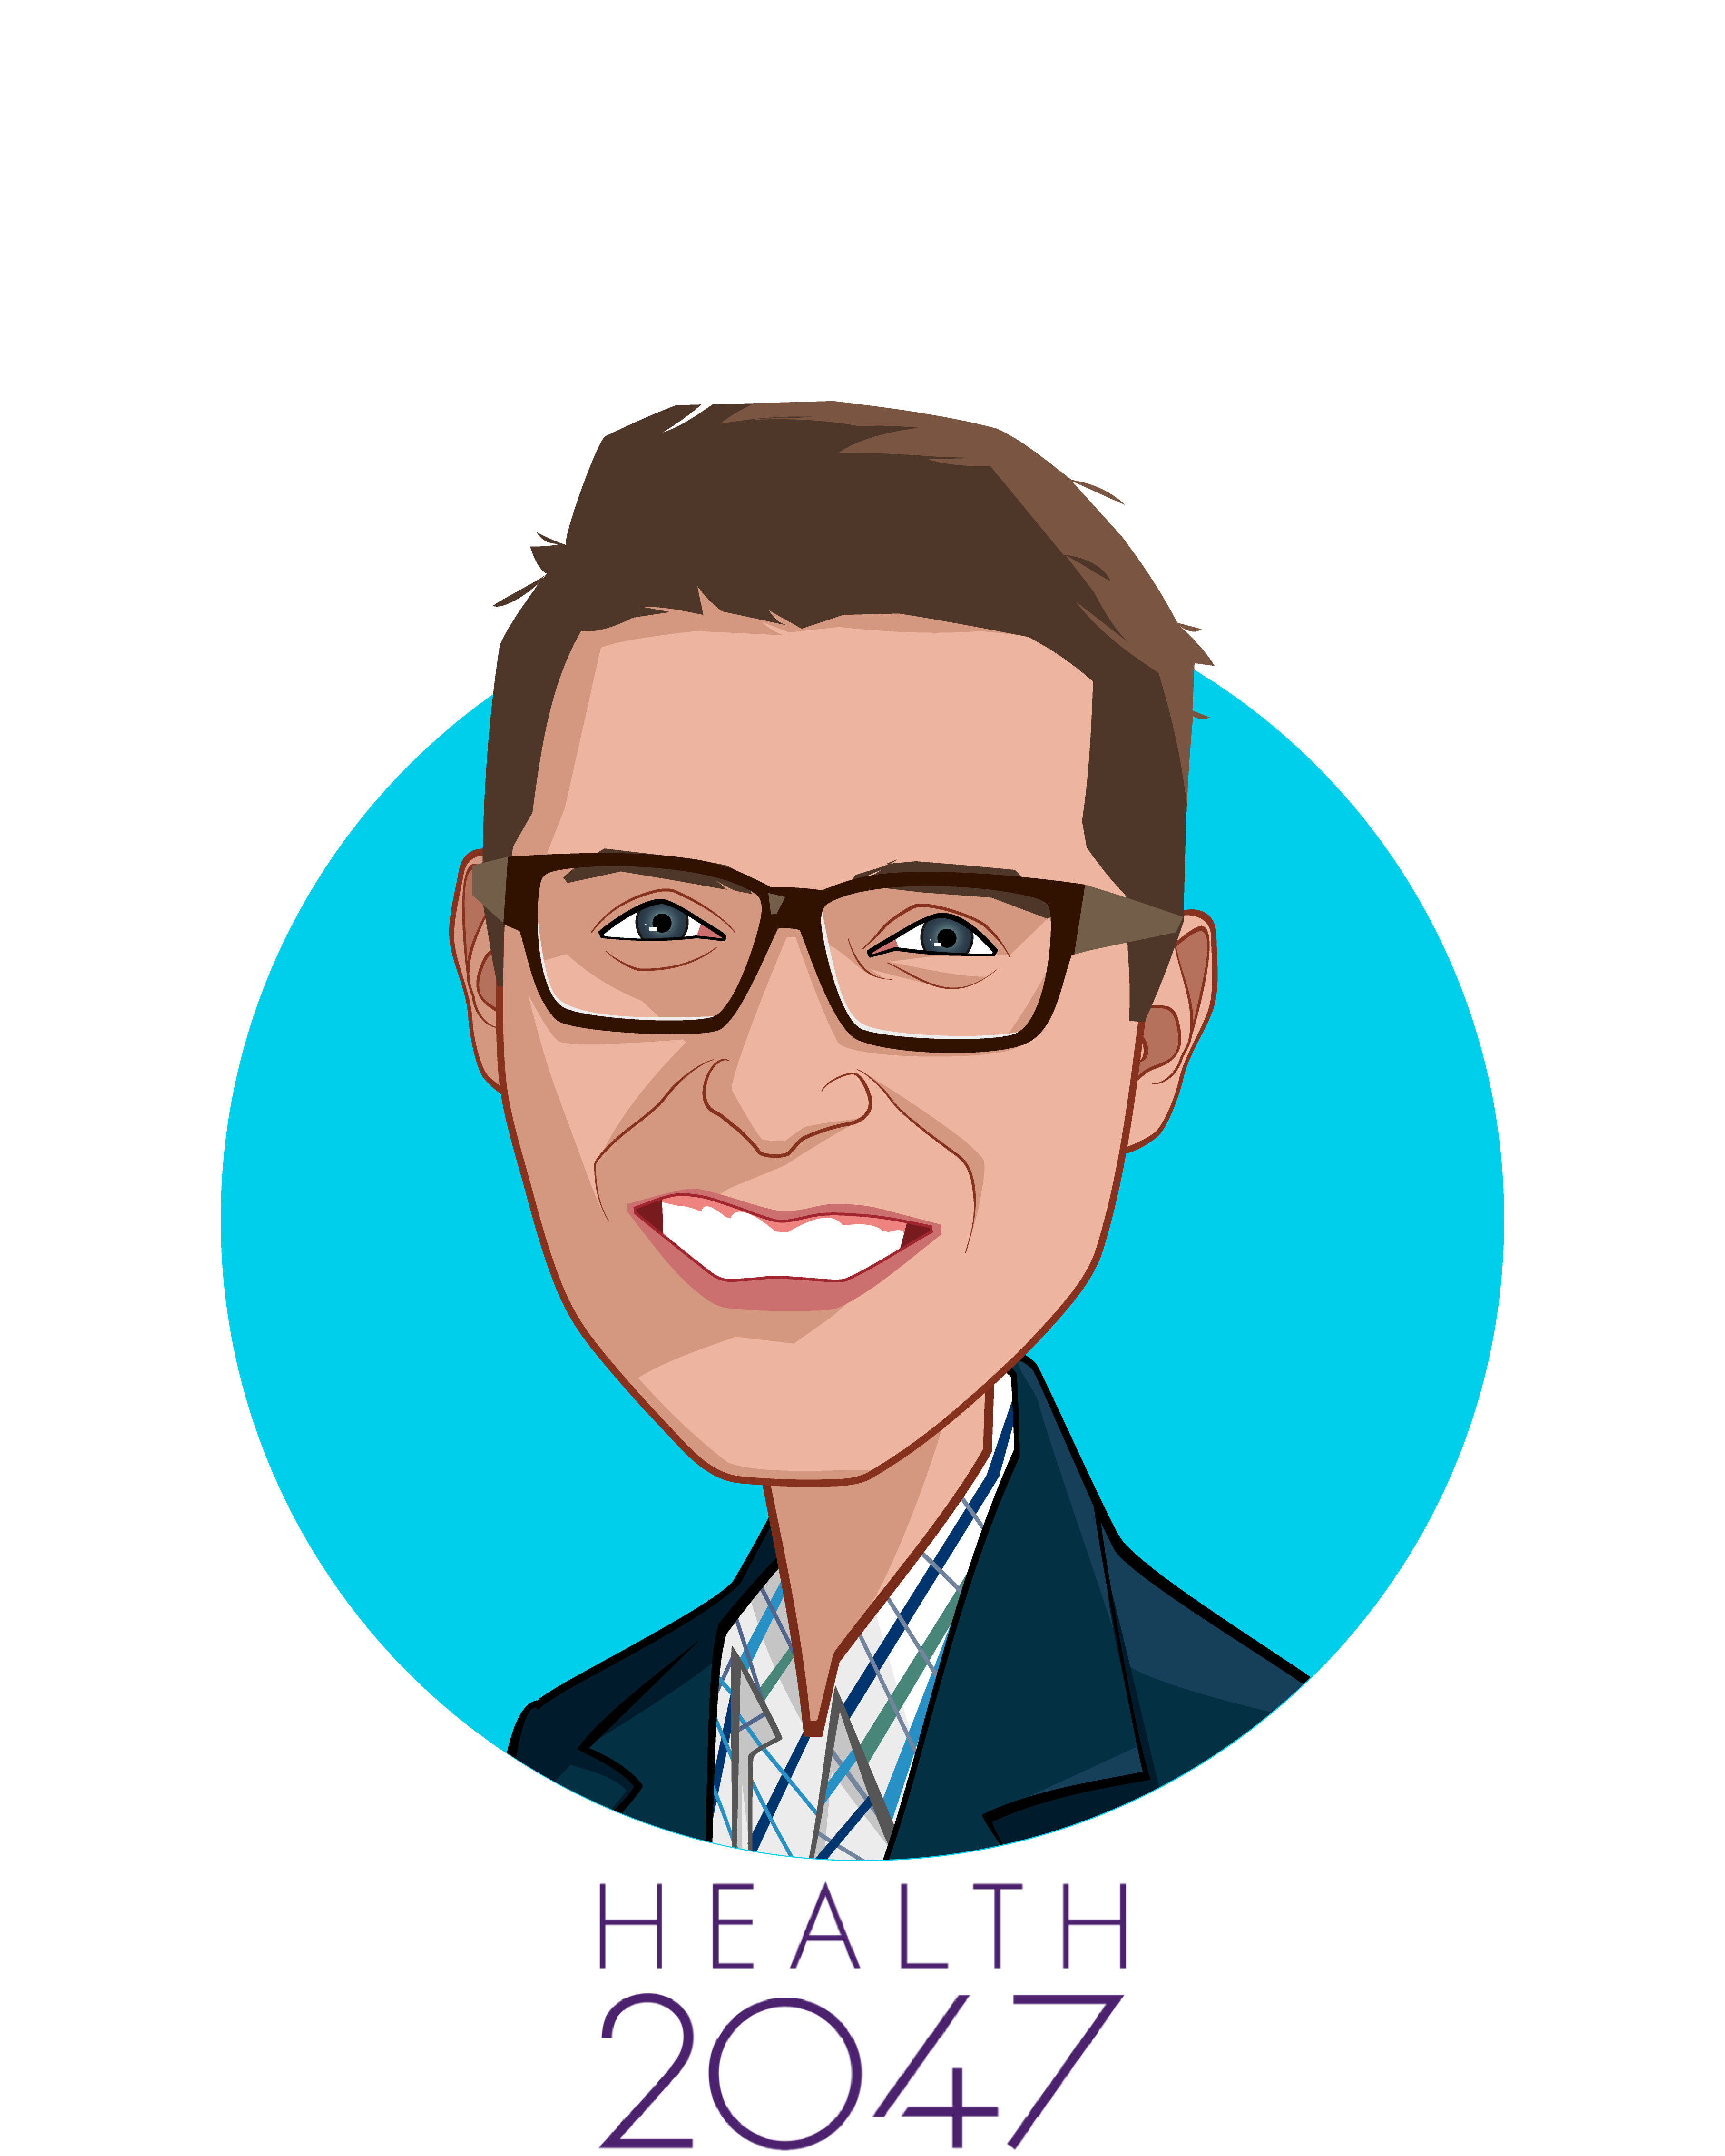 Main caricature of Jack Stockert, who is speaking at HLTH and is Managing Director at Health2047 Inc.